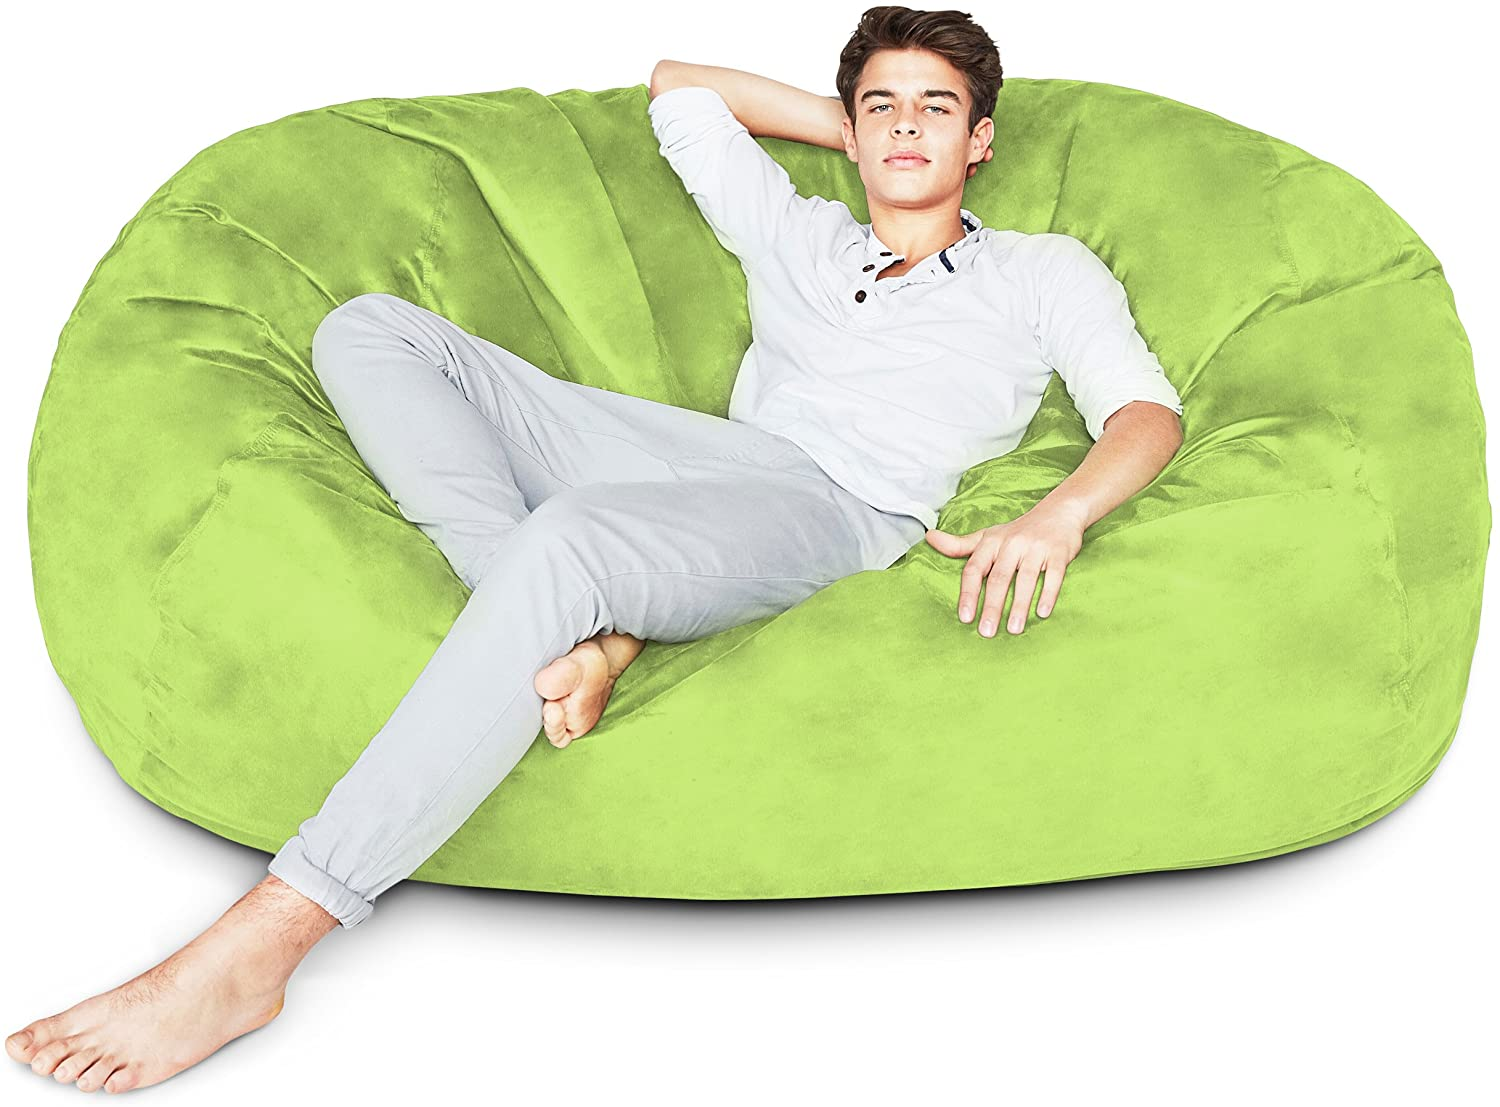 Lumaland Luxury 6-Foot Bean Bag Chair with Microsuede Cover Light Green, Machine Washable Big Size Sofa and Giant Lounger Furniture for Kids, Teens and Adults